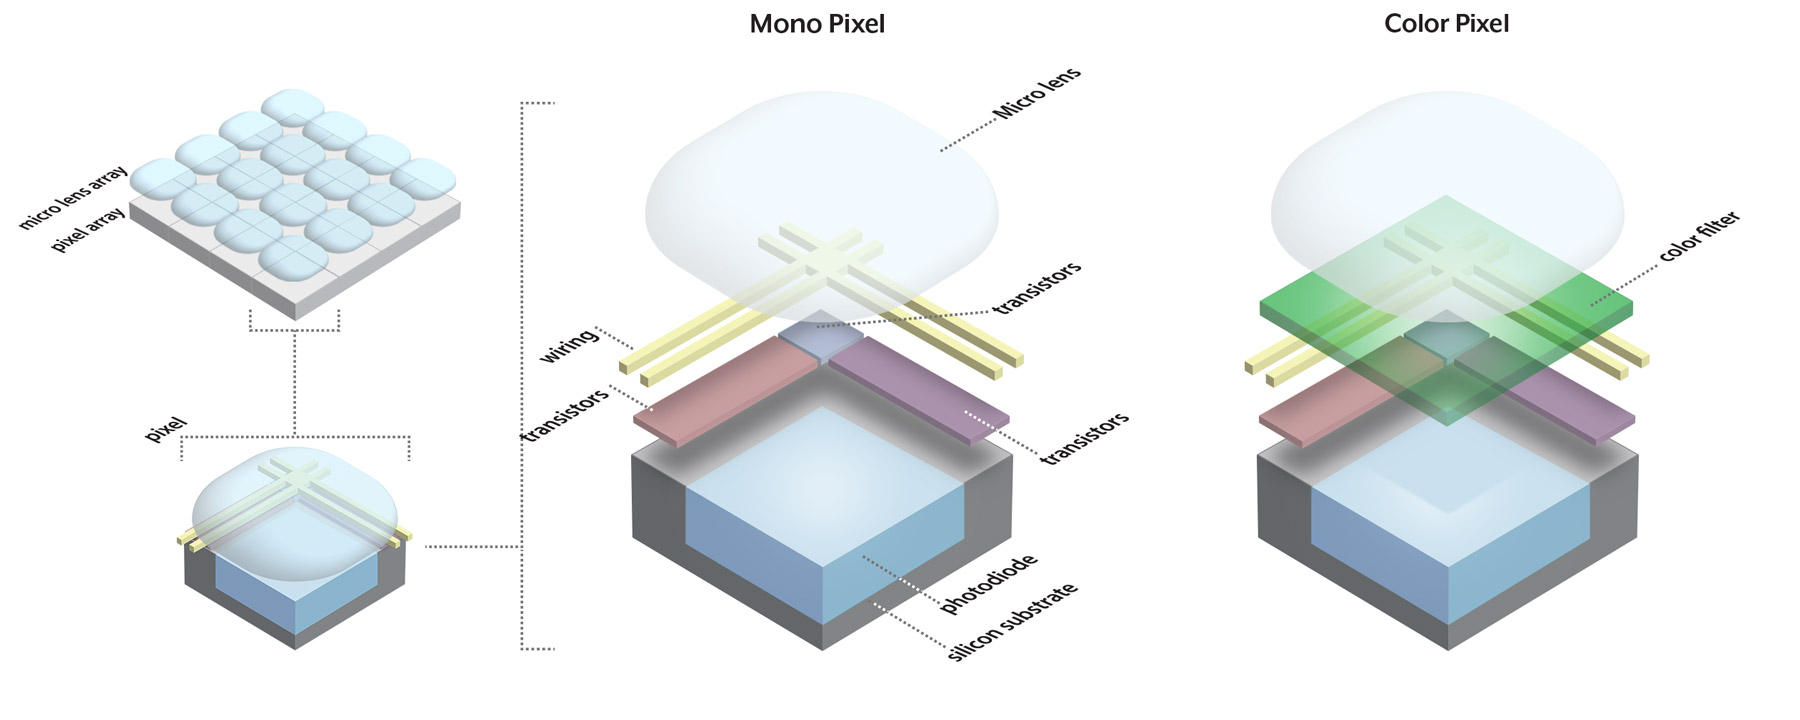 Introduction To Image Sensors Lucid Vision Labs Just How Do You Make A Color Sensor Mono Vs Pixel In